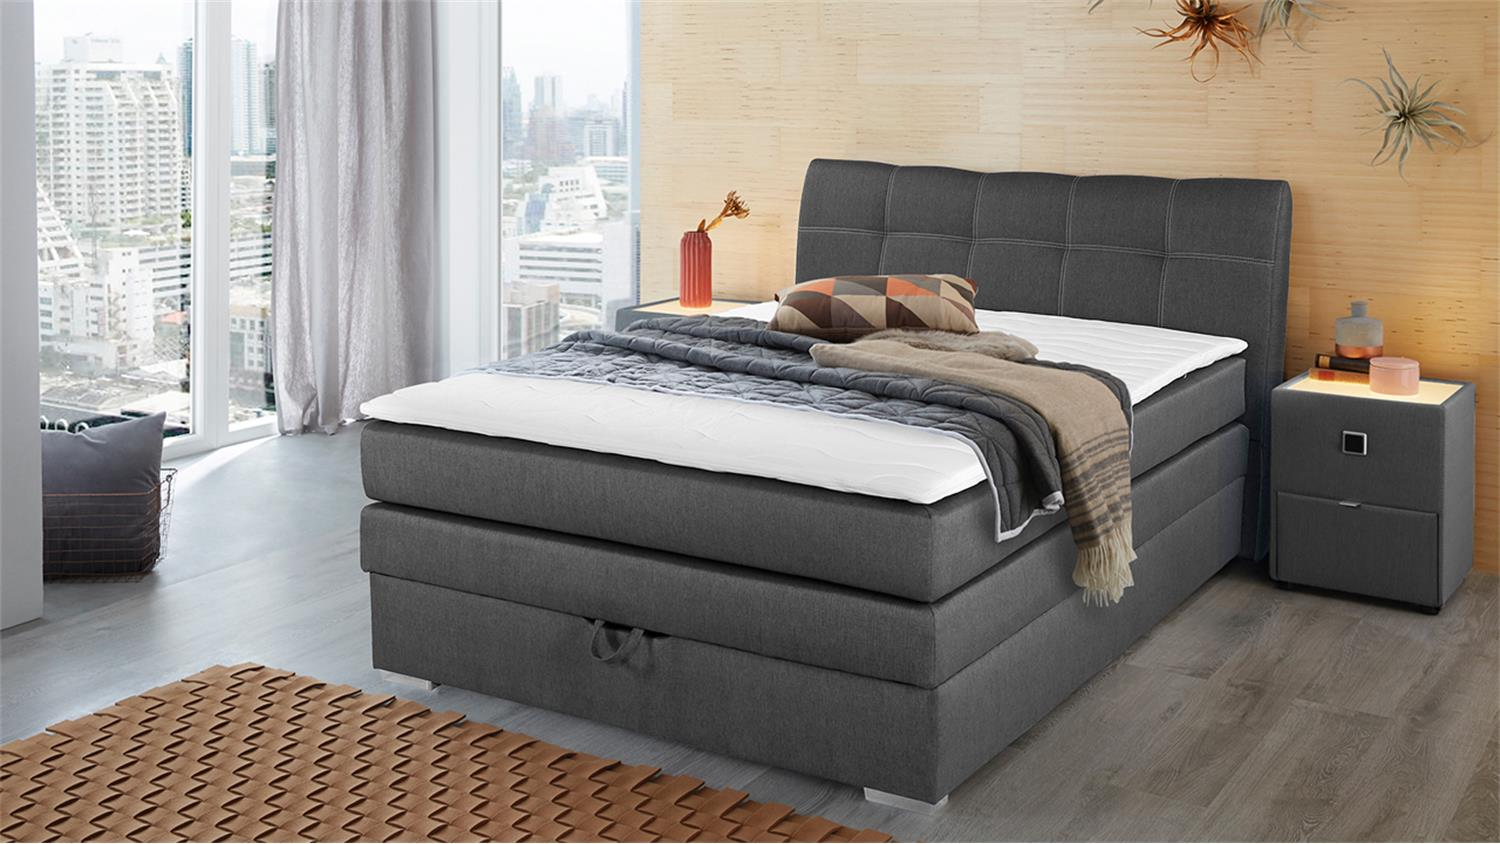 boxspringbett amelie 140 graubraun mit bettkasten topper. Black Bedroom Furniture Sets. Home Design Ideas